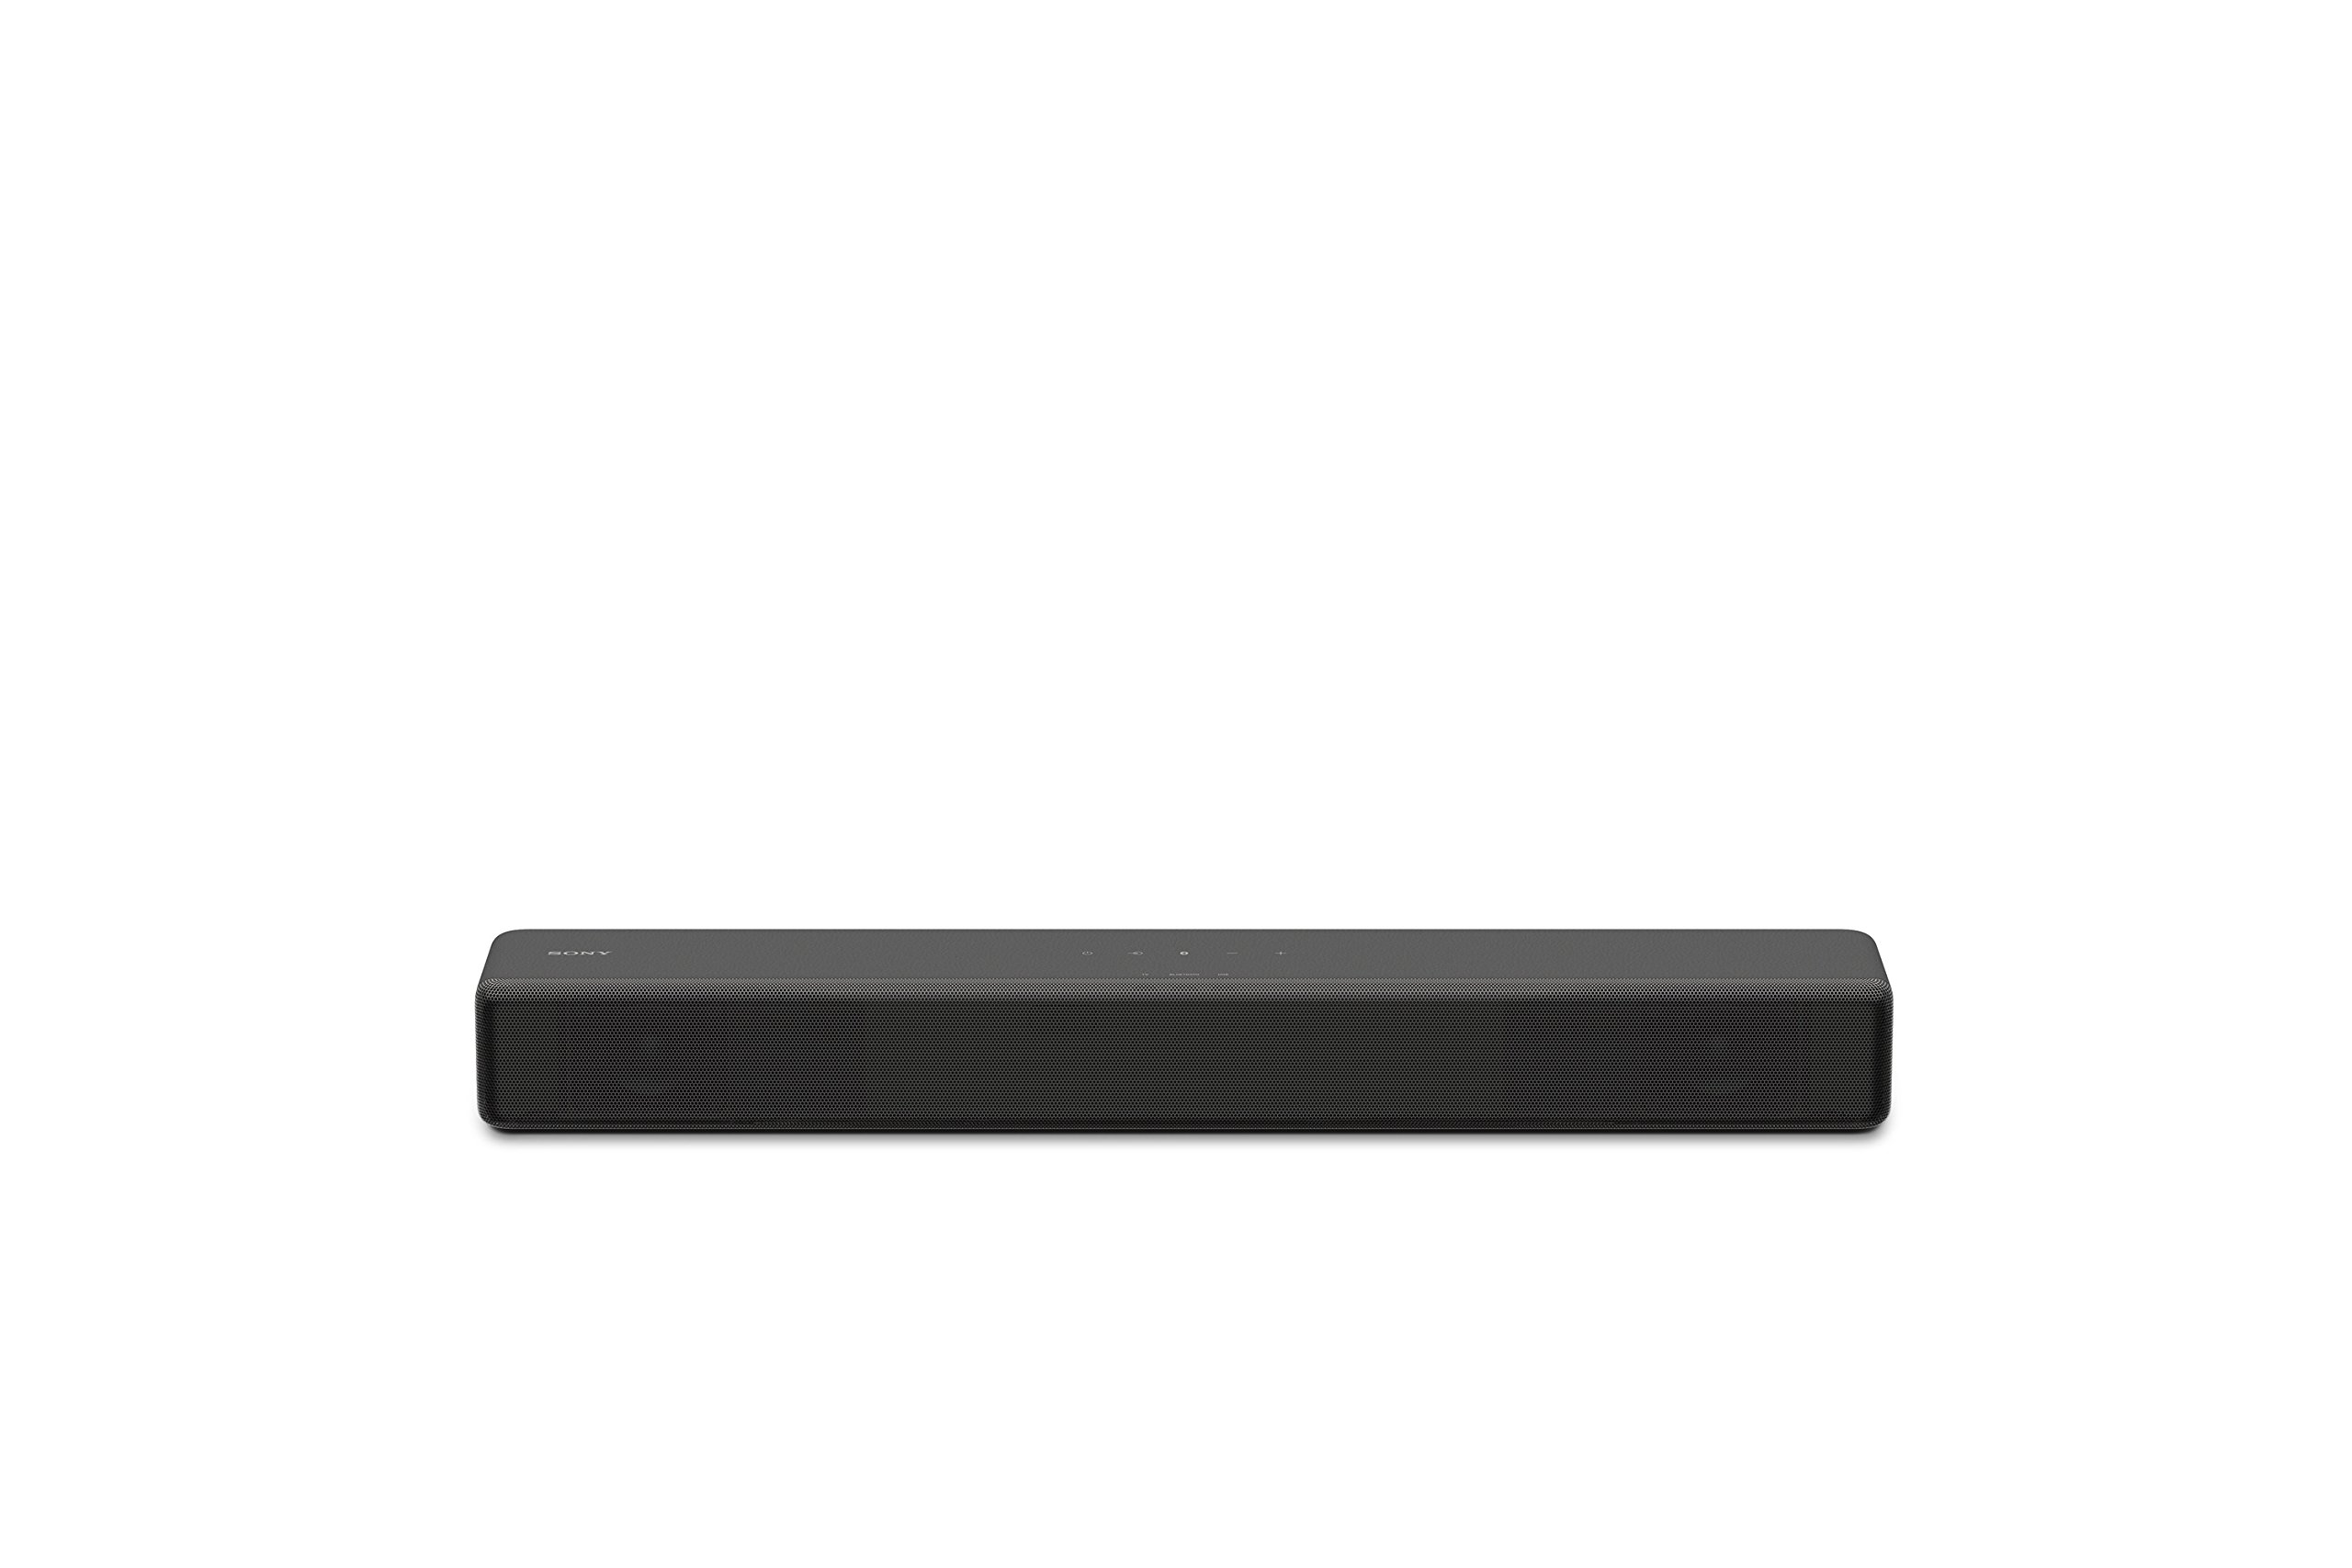 Sony S200F 2.1ch Sound Bar with built-in Subwoofer and Bluetooth, (HT200F)